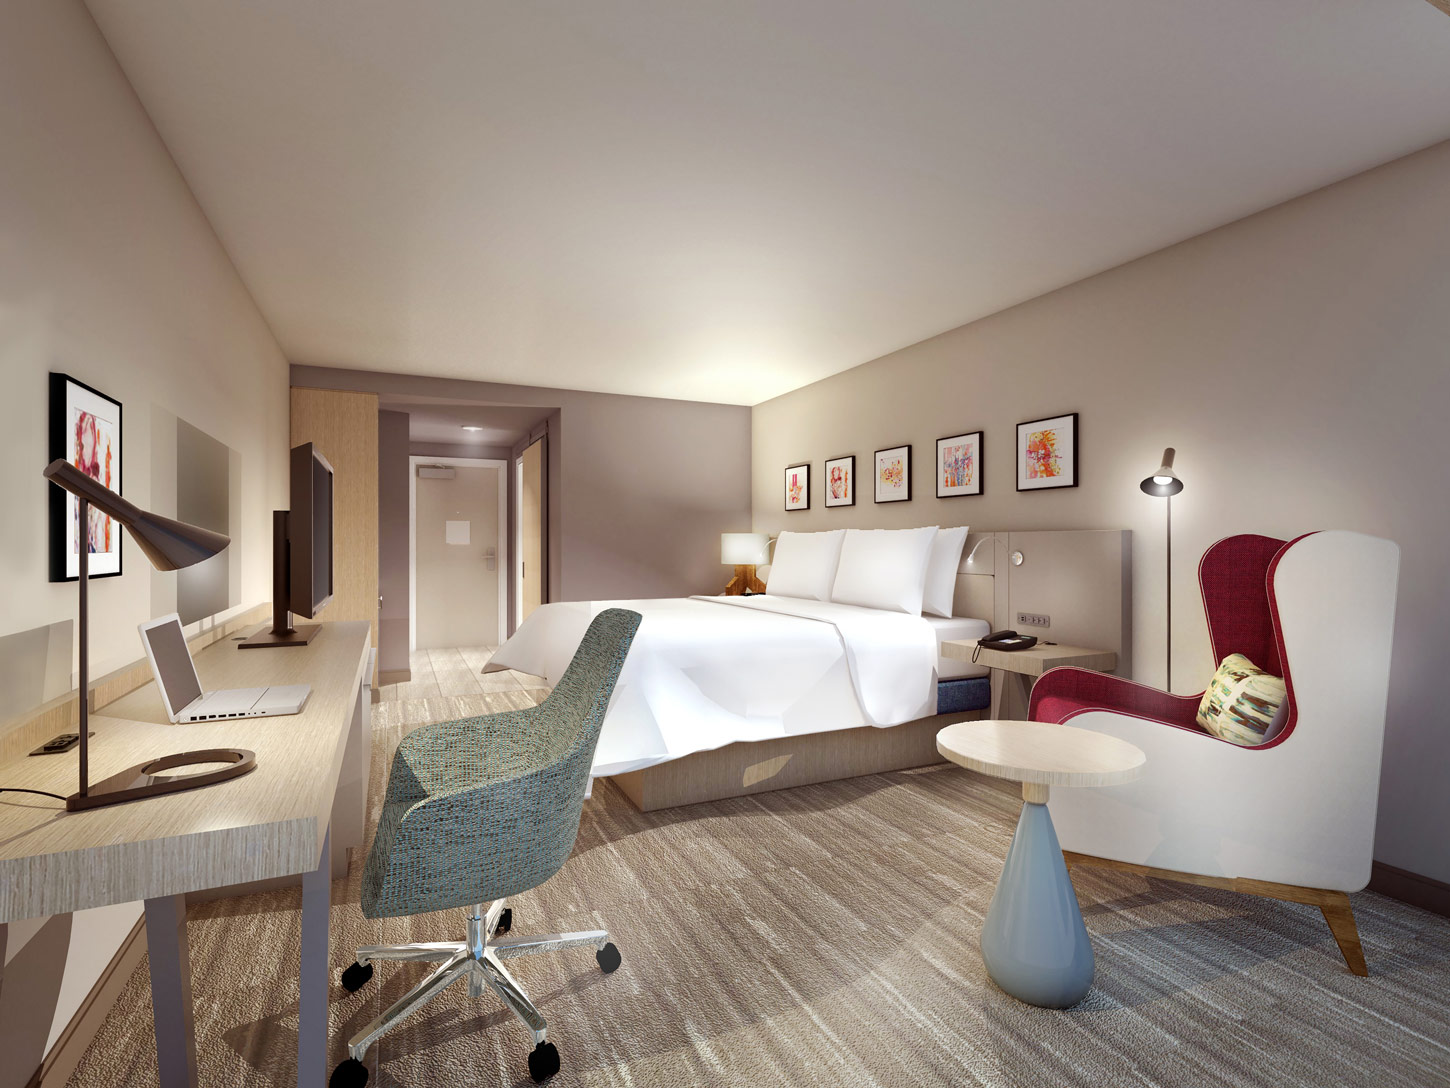 Spartanburg, SC U2013 Hilton Garden Inn, The Globally Recognized, Upscale Hotel  Brand Is Coming To The WestGate Towncenter In Spartanburg, South Carolina.